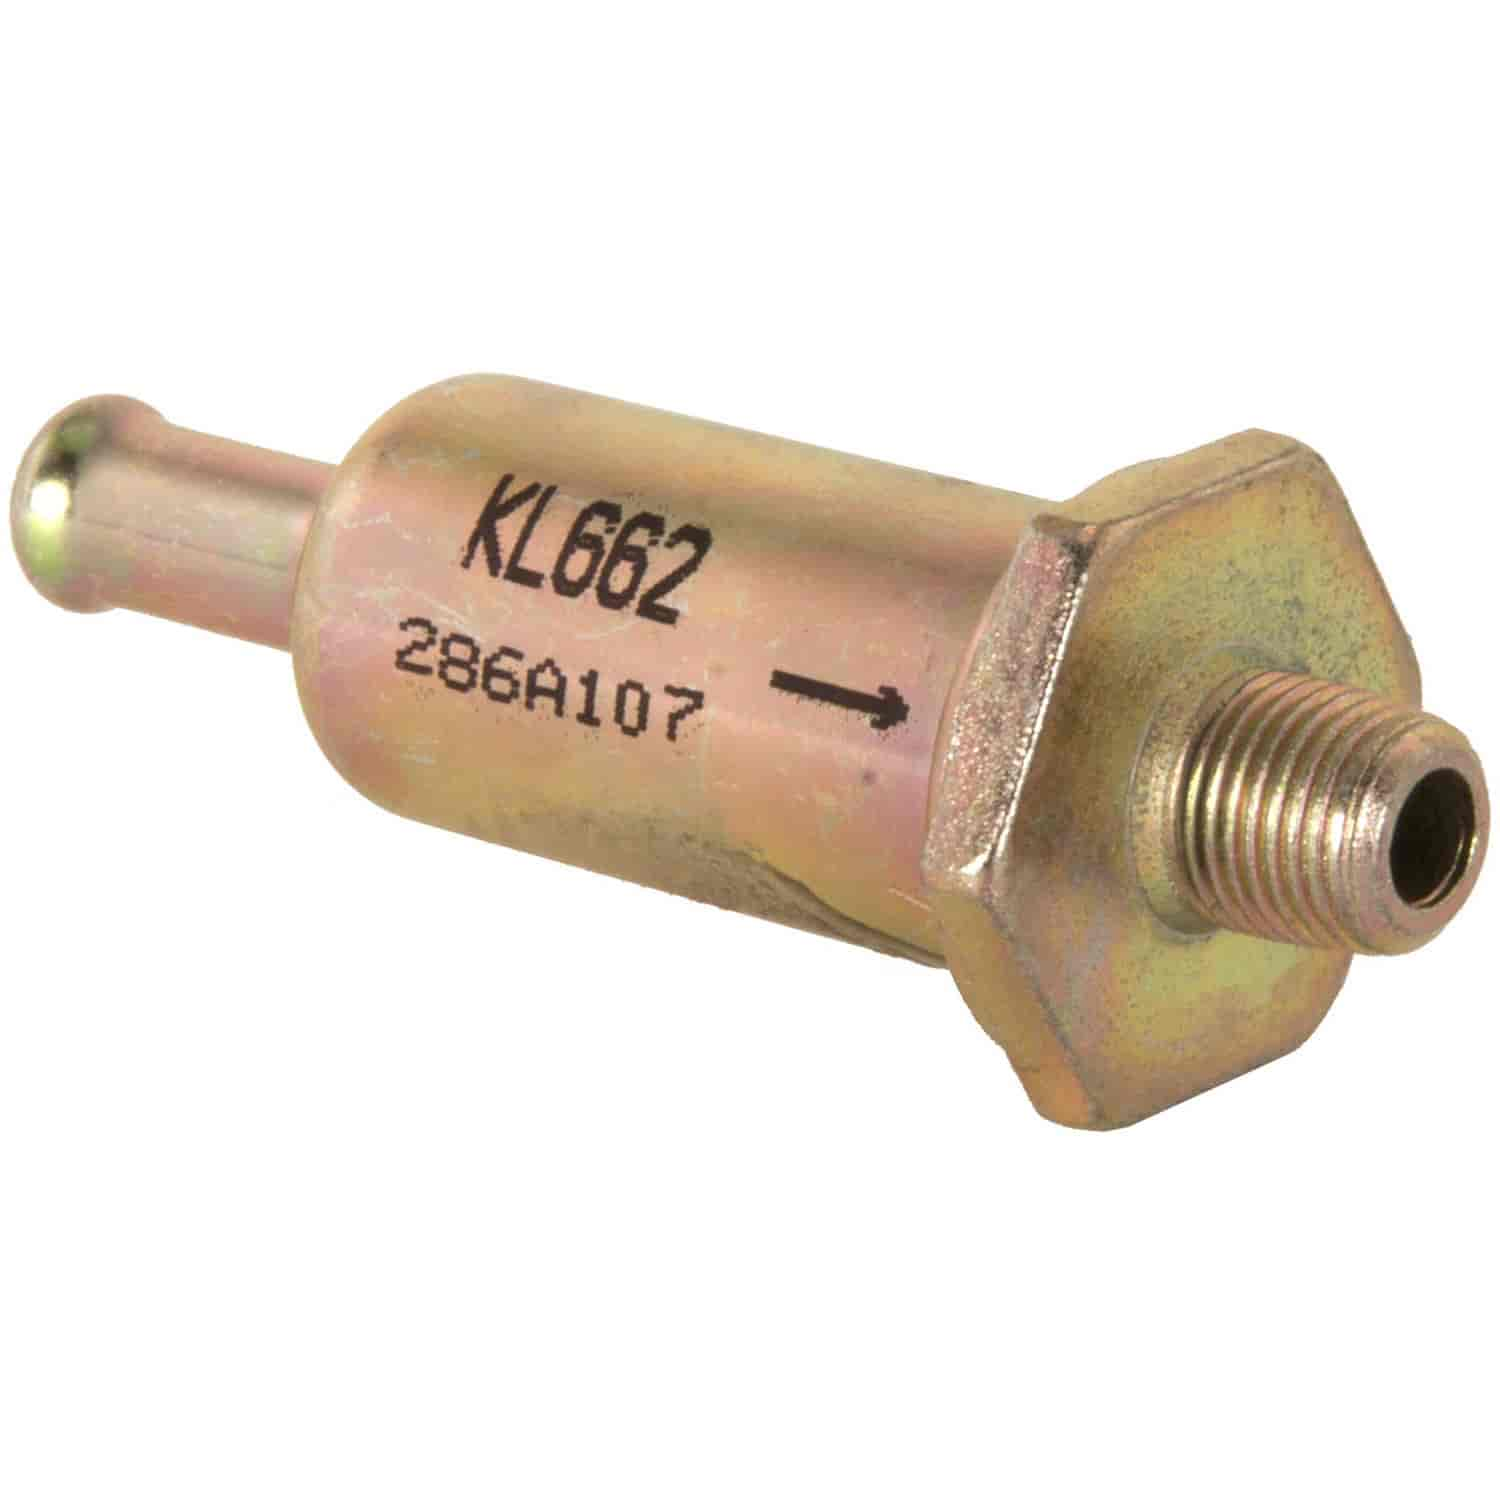 Clevite Mahle Kl662 Fuel Filter Ford Family Of Cars 68 82 Jegs